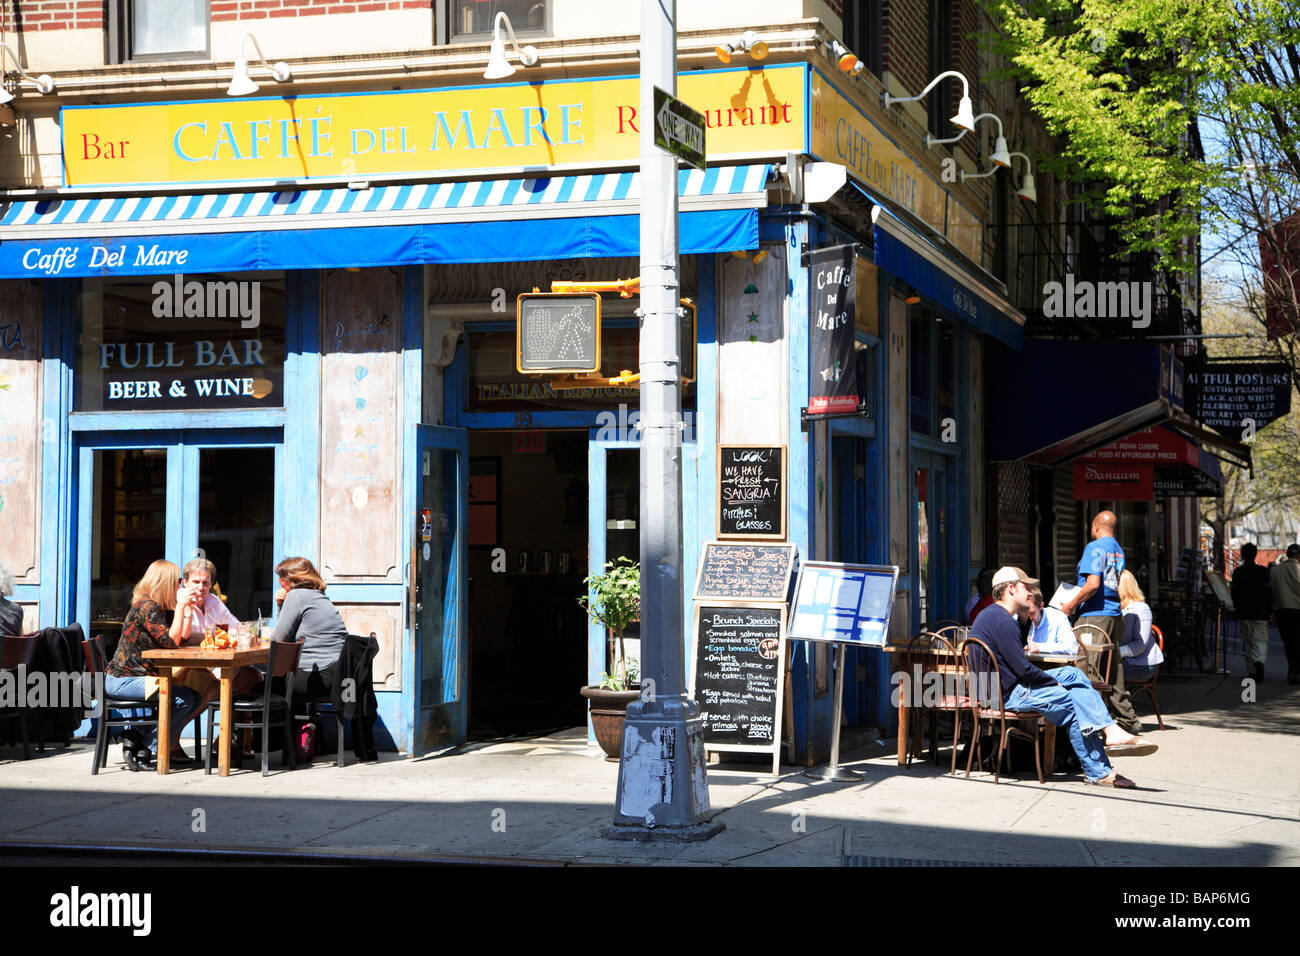 High Quality Outdoor Cafe Macdougal Street Greenwich Village New York City   Stock Image